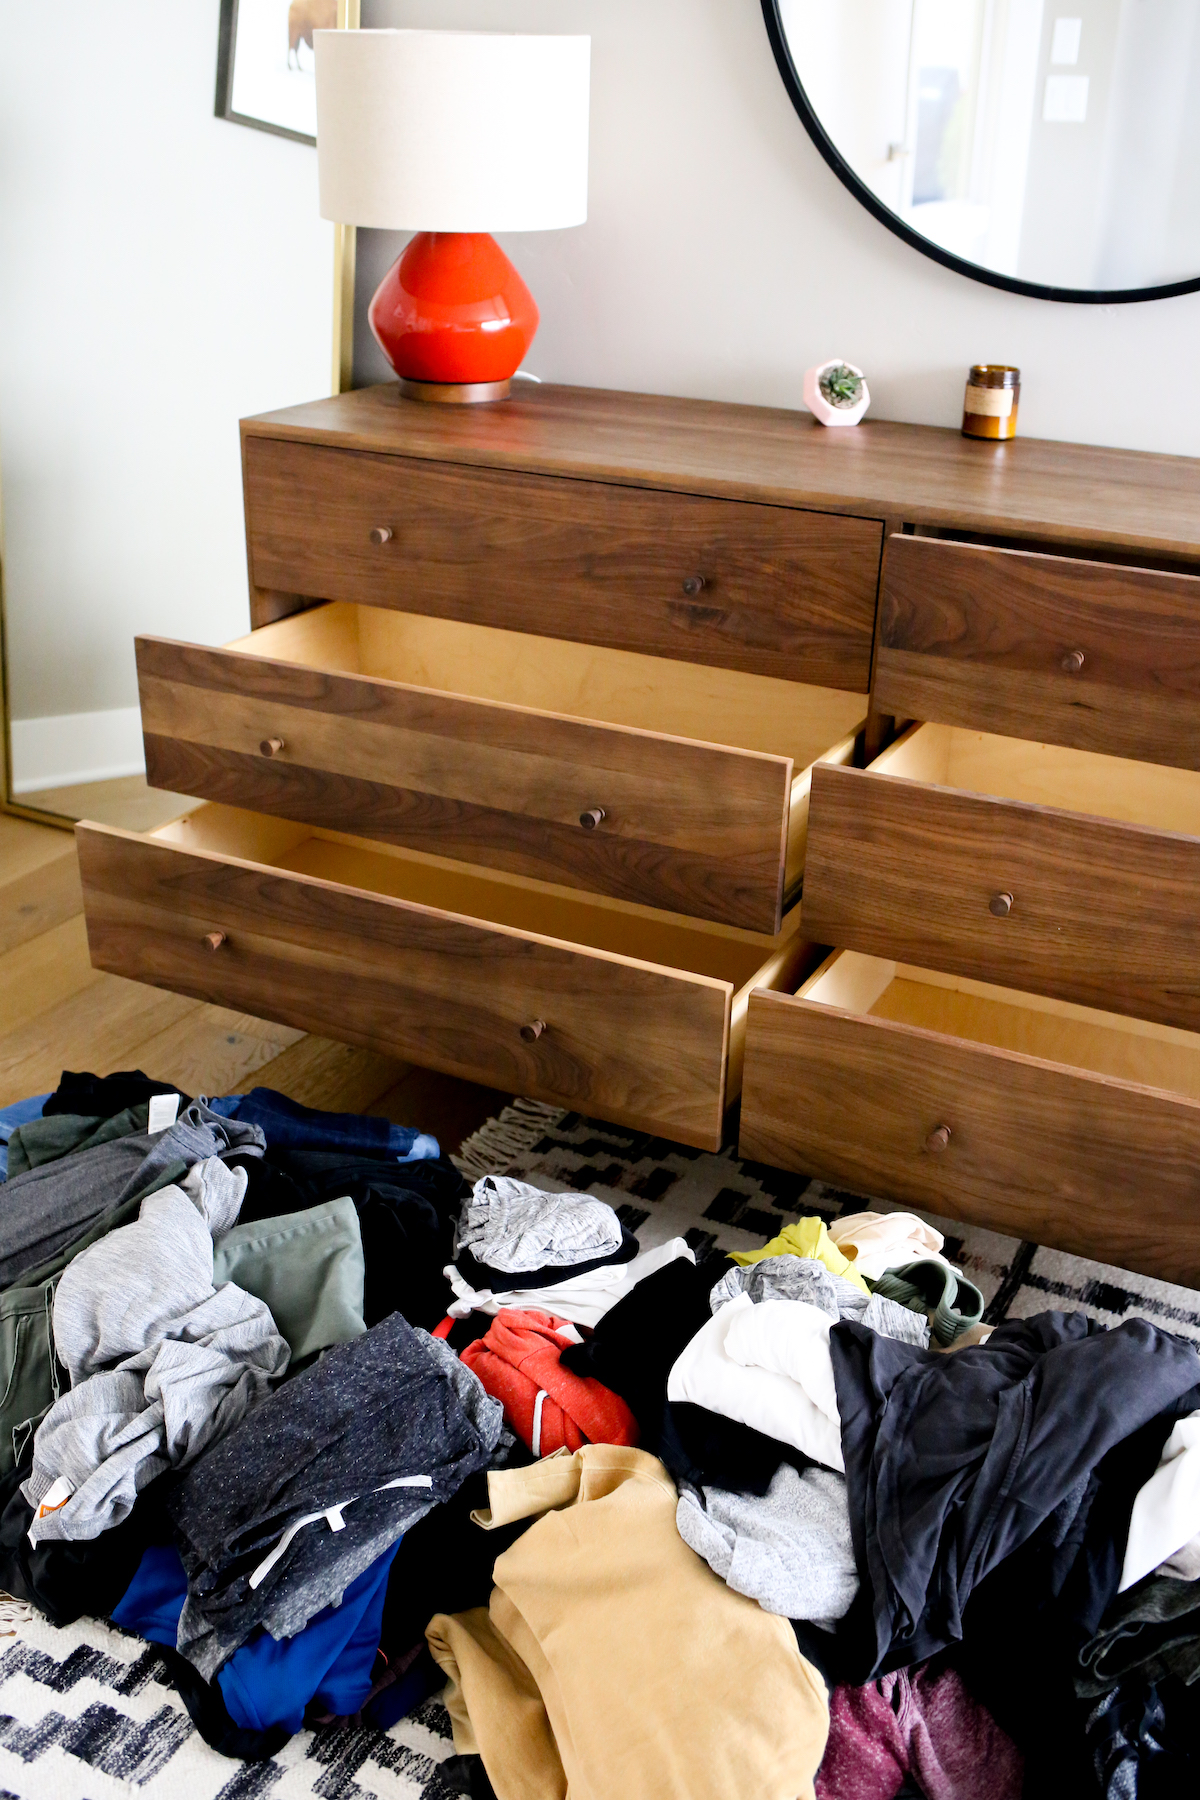 Dresser with clothing for capsule wardrobe